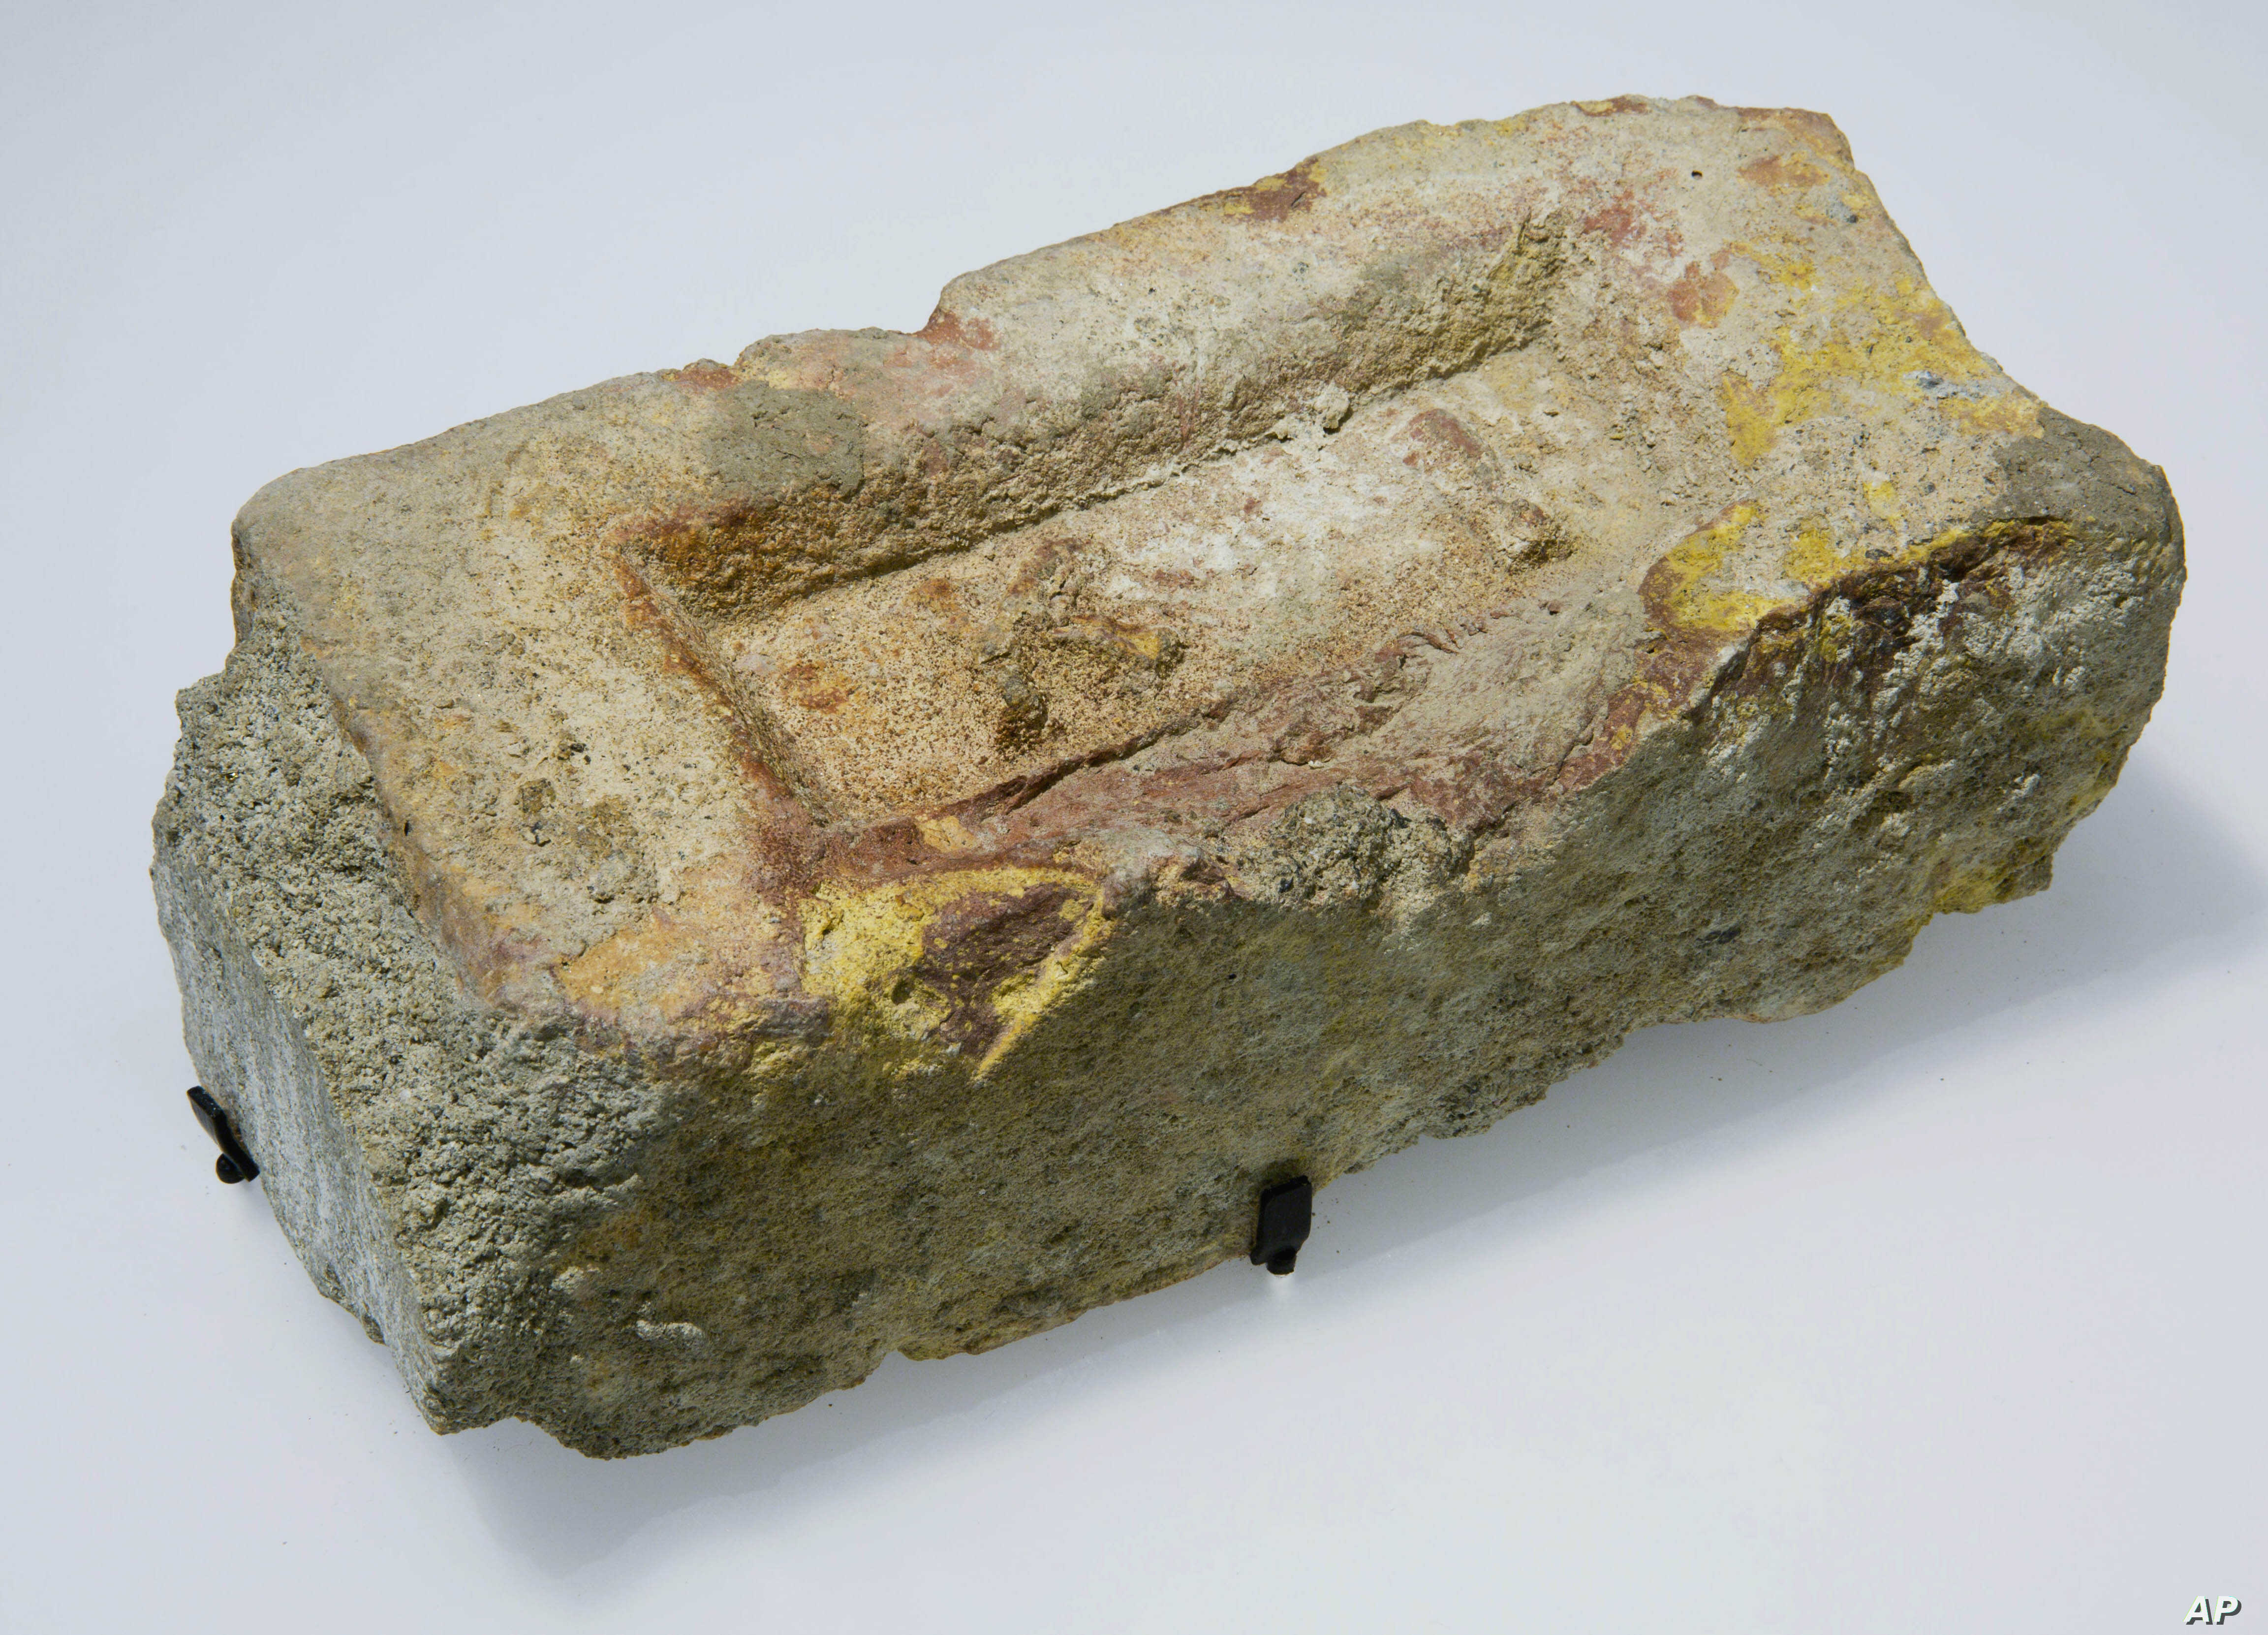 In this Sept. 5, 2014 photo provided by the National September 11 Memorial & Museum, a brick from the compound in Abbottabad, Pakistan, where Osama bin Laden was captured and killed, is shown at the museum in New York.